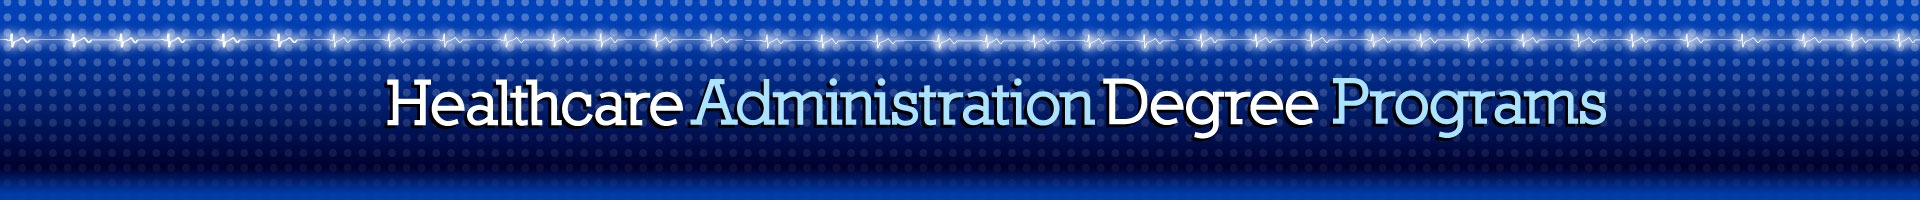 Healthcare Administration Degree Programs